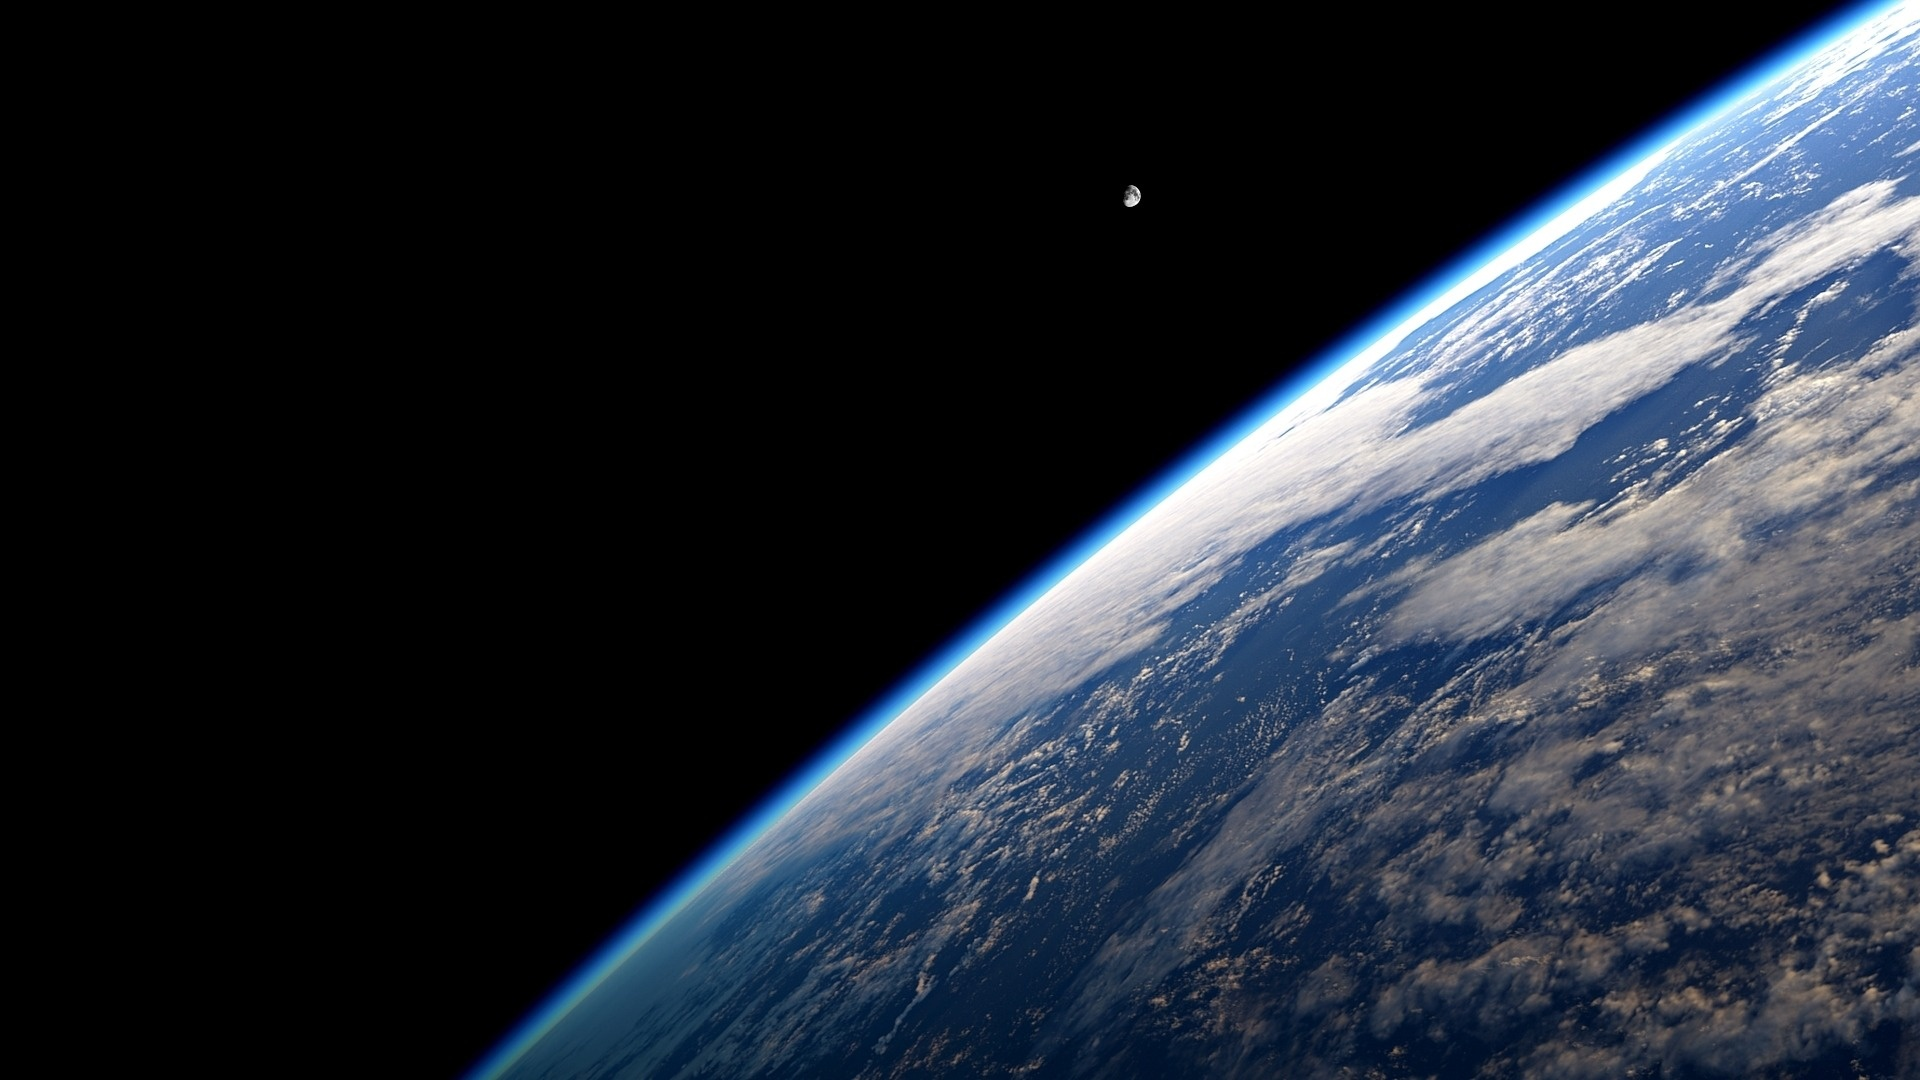 Photography Wallpaper: Hd Pictures Of Earth From Space Wallpapers.